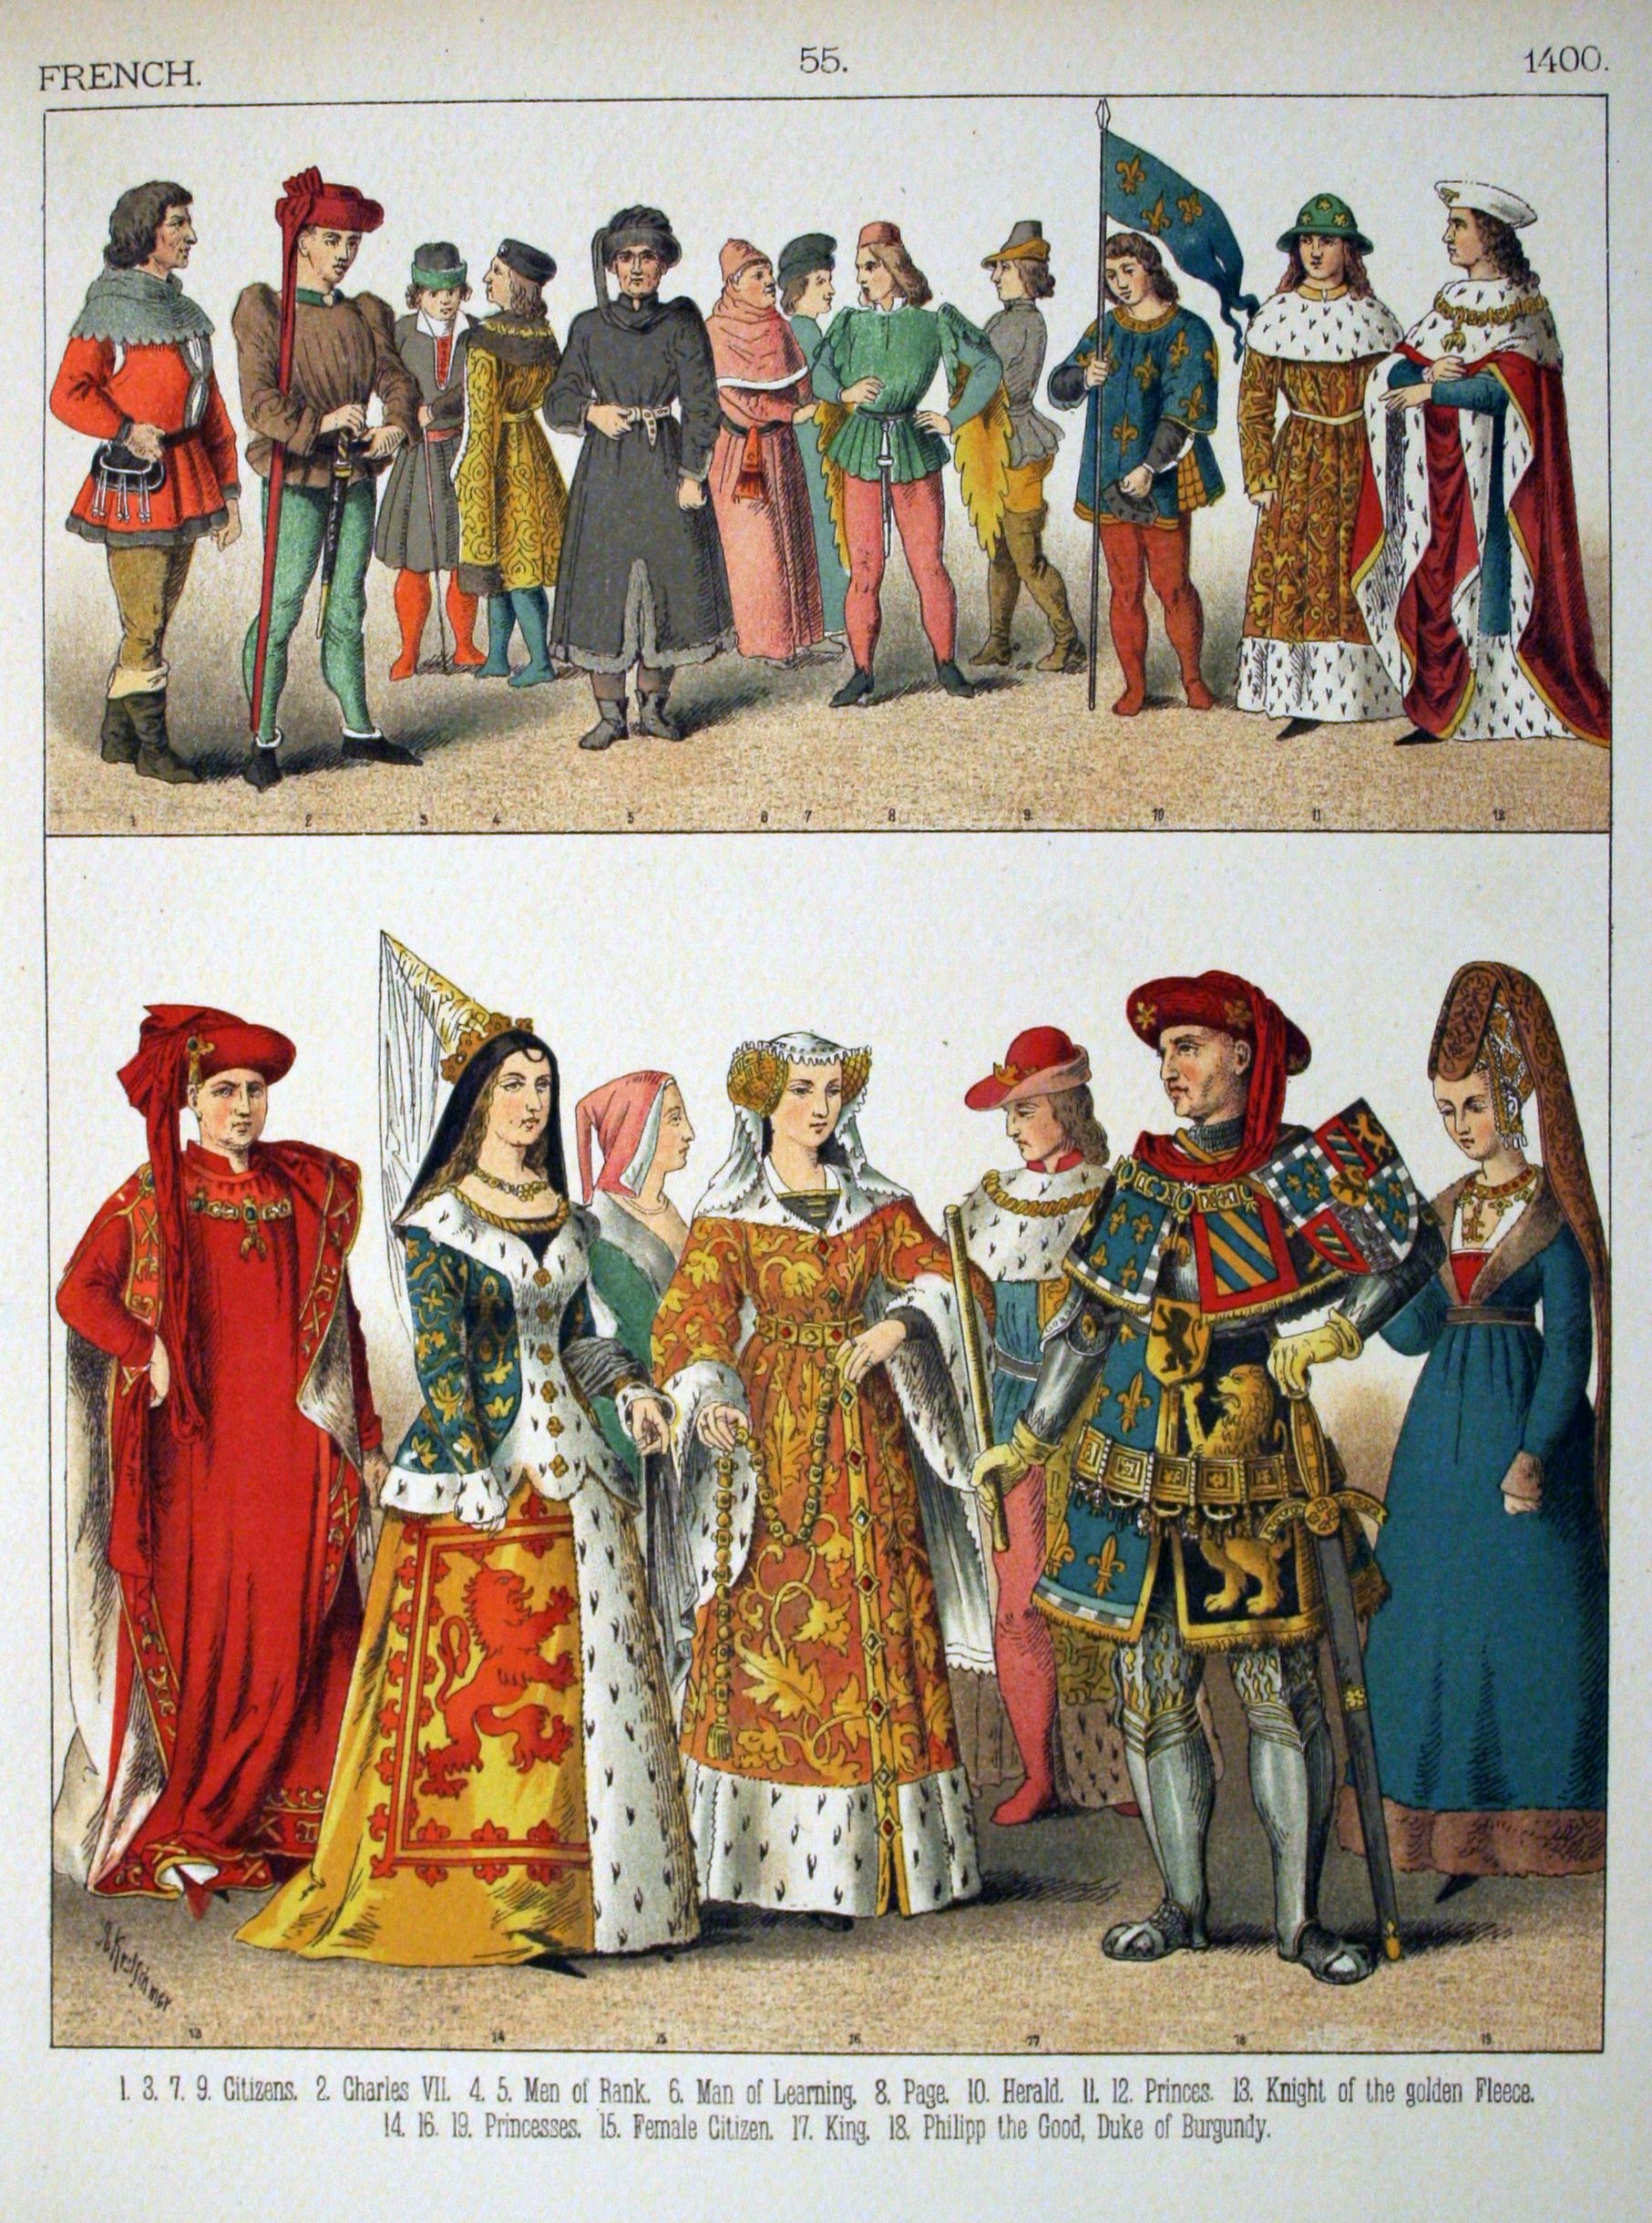 Http Upload Wikimedia Org Wikipedia Commons D De 1400 2c French 055 Costumes Of All Nations Costume Historique Histoire De La Mode Histoire Du Costume